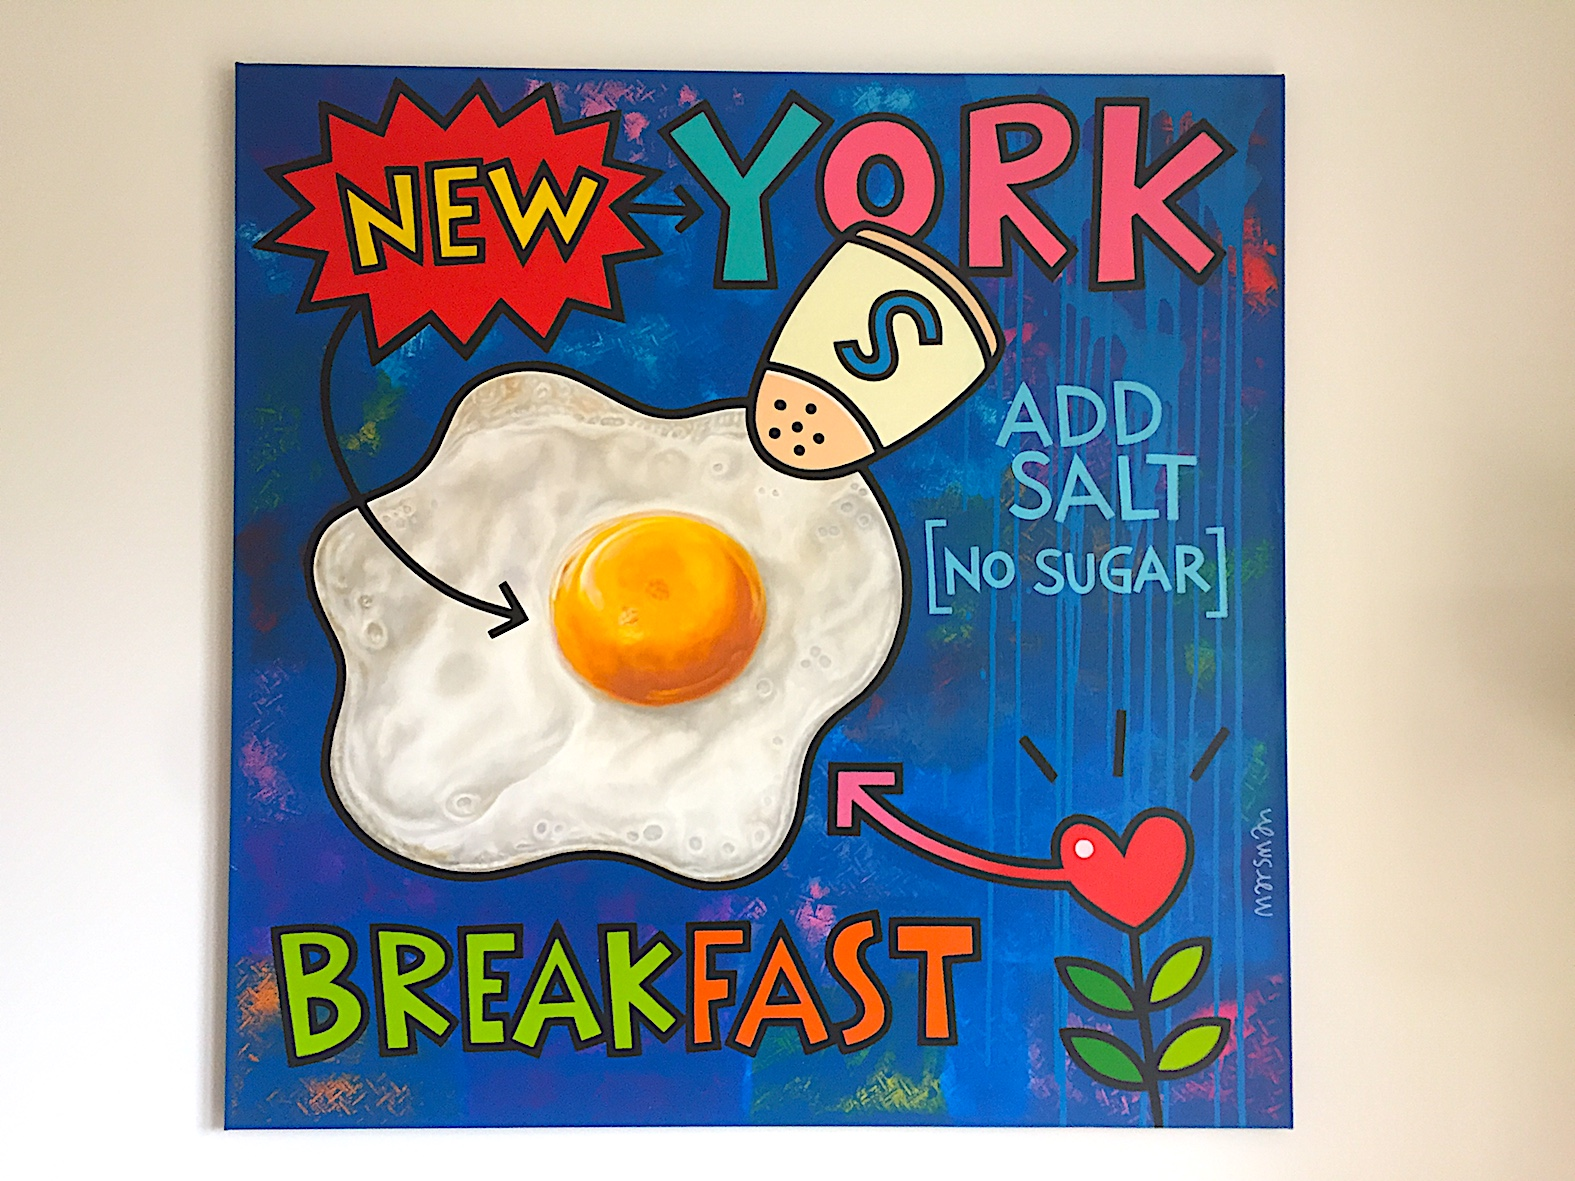 "<b>NEW YORK BREAKFAST</b> - 110 x 110 cm - acrylic and oilpaint on canvas - SOLD  <a style=""color: red; text-decoration: none"" href=""mailto:jpgpmarsman@onsbrabantnet.nl"">BESTEL</a>"